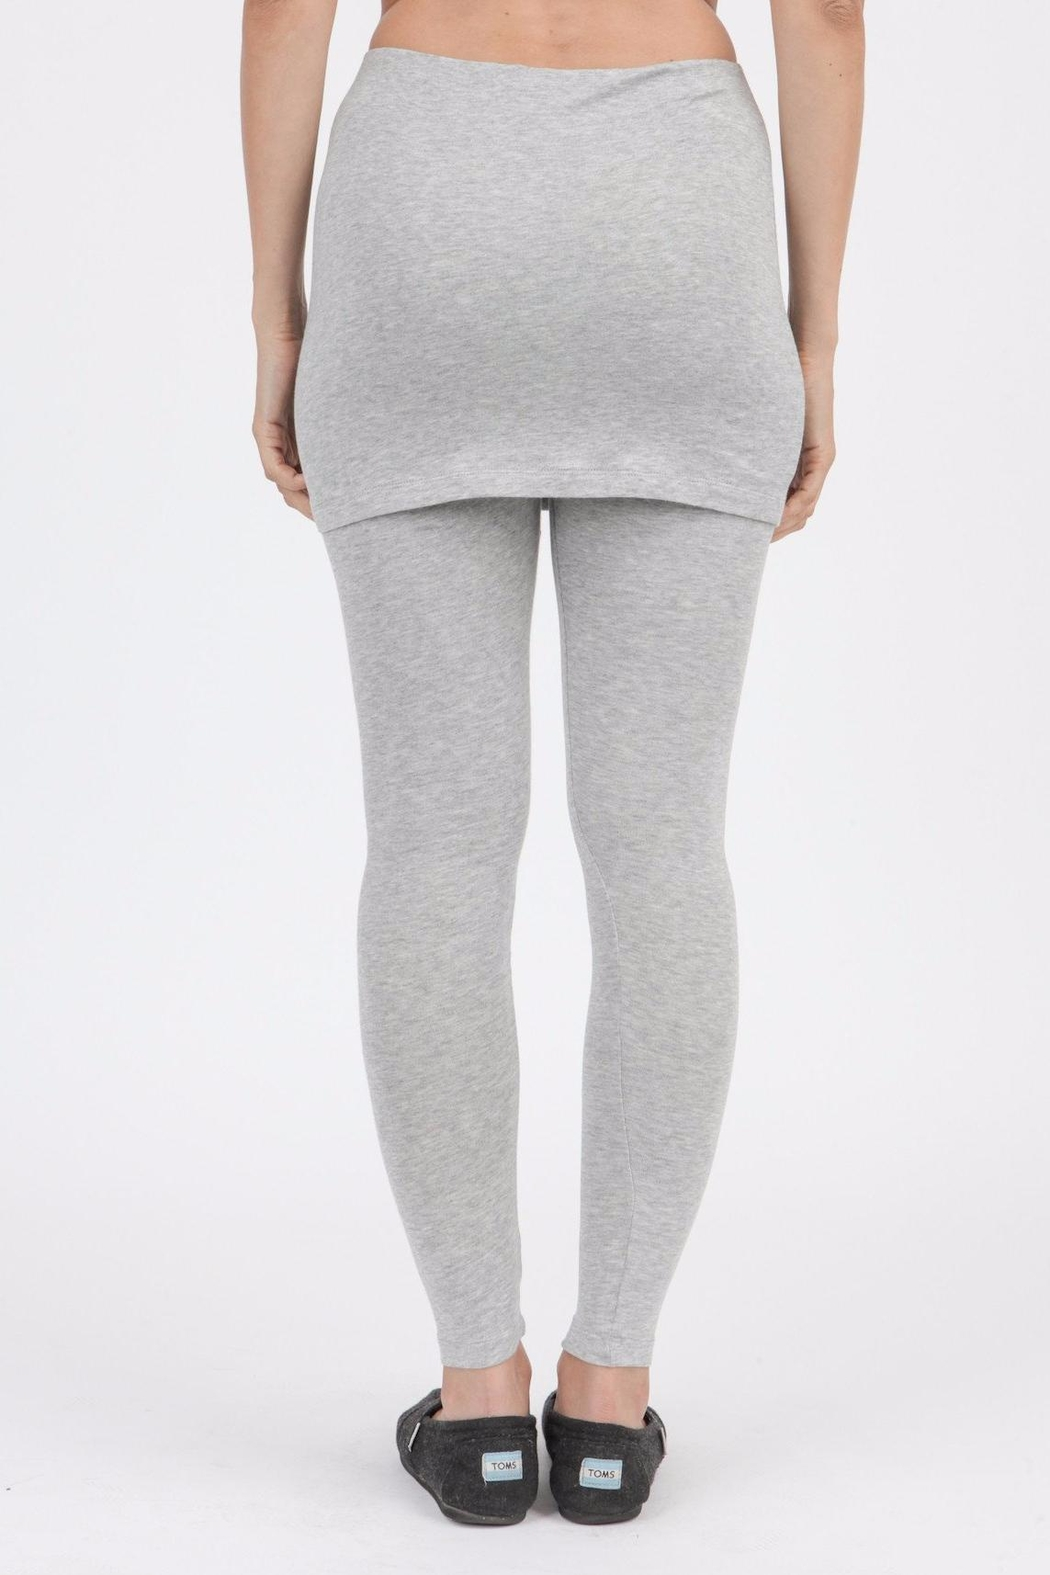 Articles of Society Susy Skirted Legging - Front Full Image